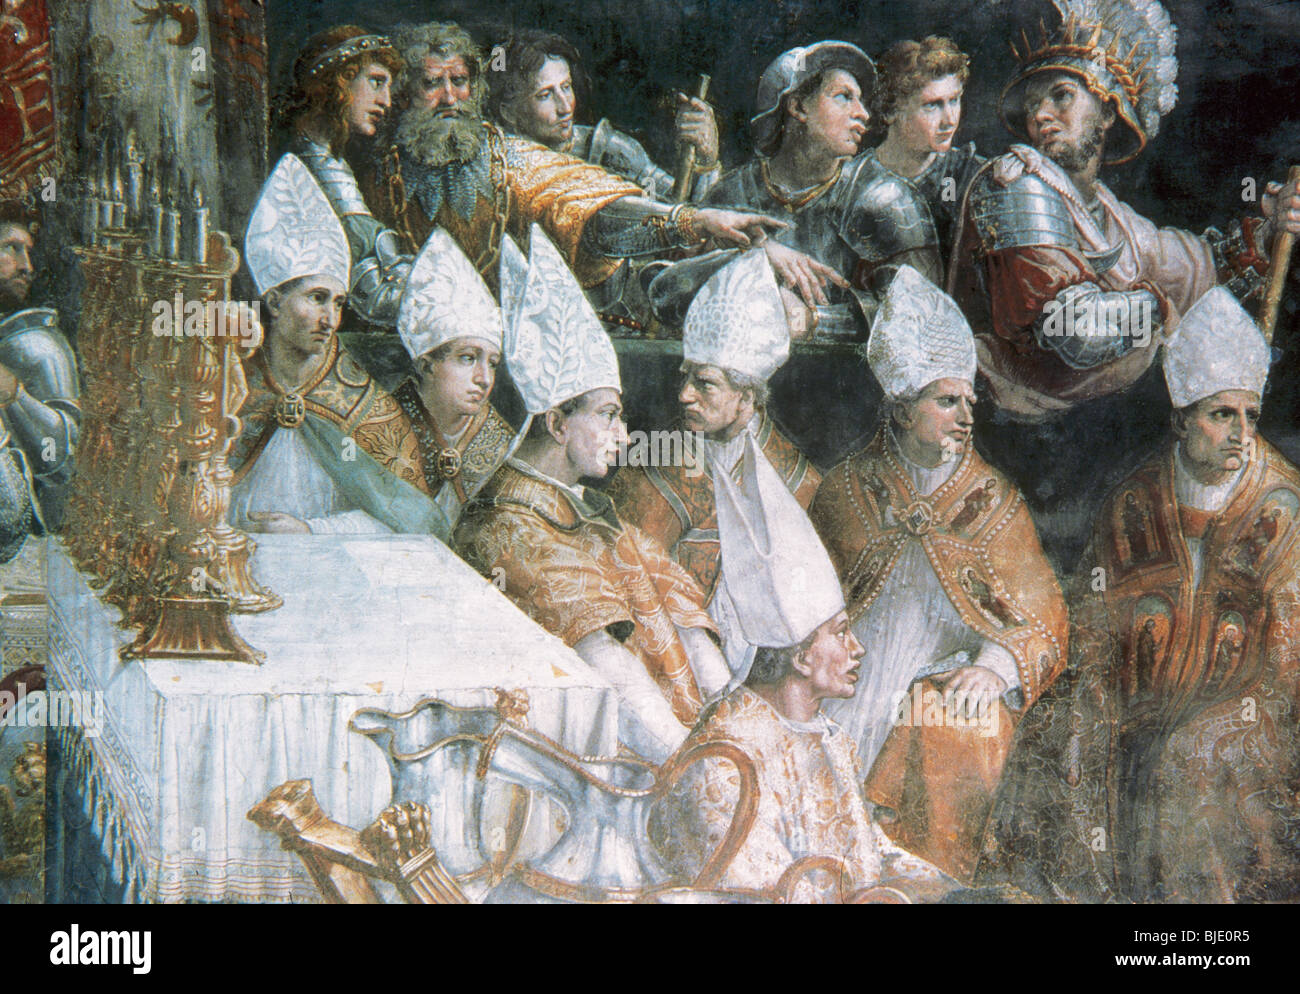 Raphael, Raffaello Santi or Sanzio, called (Urbino, 1483-Rome, 1520). Italian painter. Coronation of Charlemagne. - Stock Image